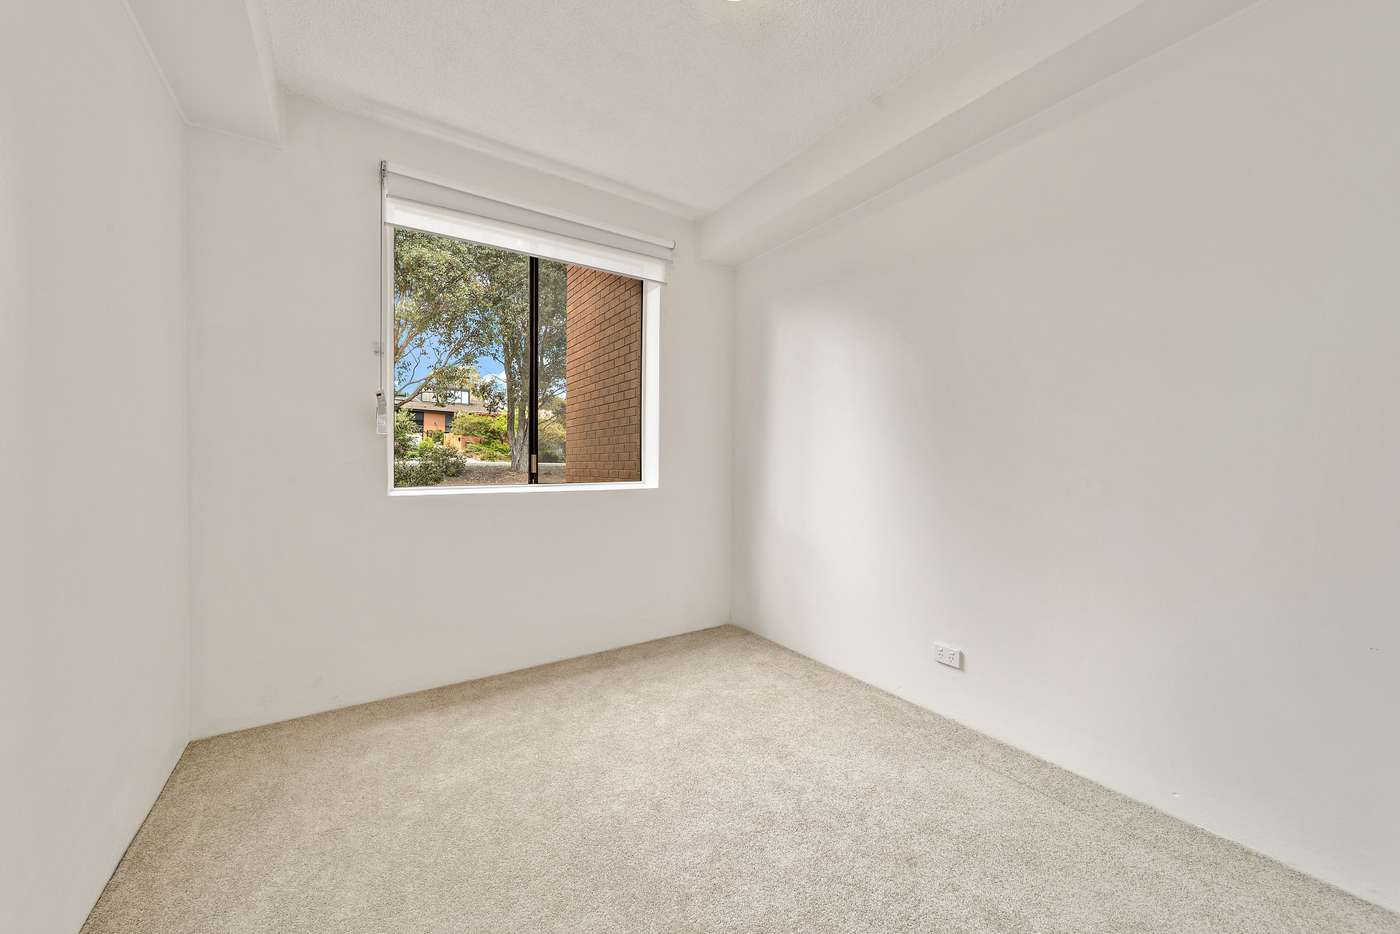 Sixth view of Homely apartment listing, 16/32 Springvale Drive, Hawker ACT 2614